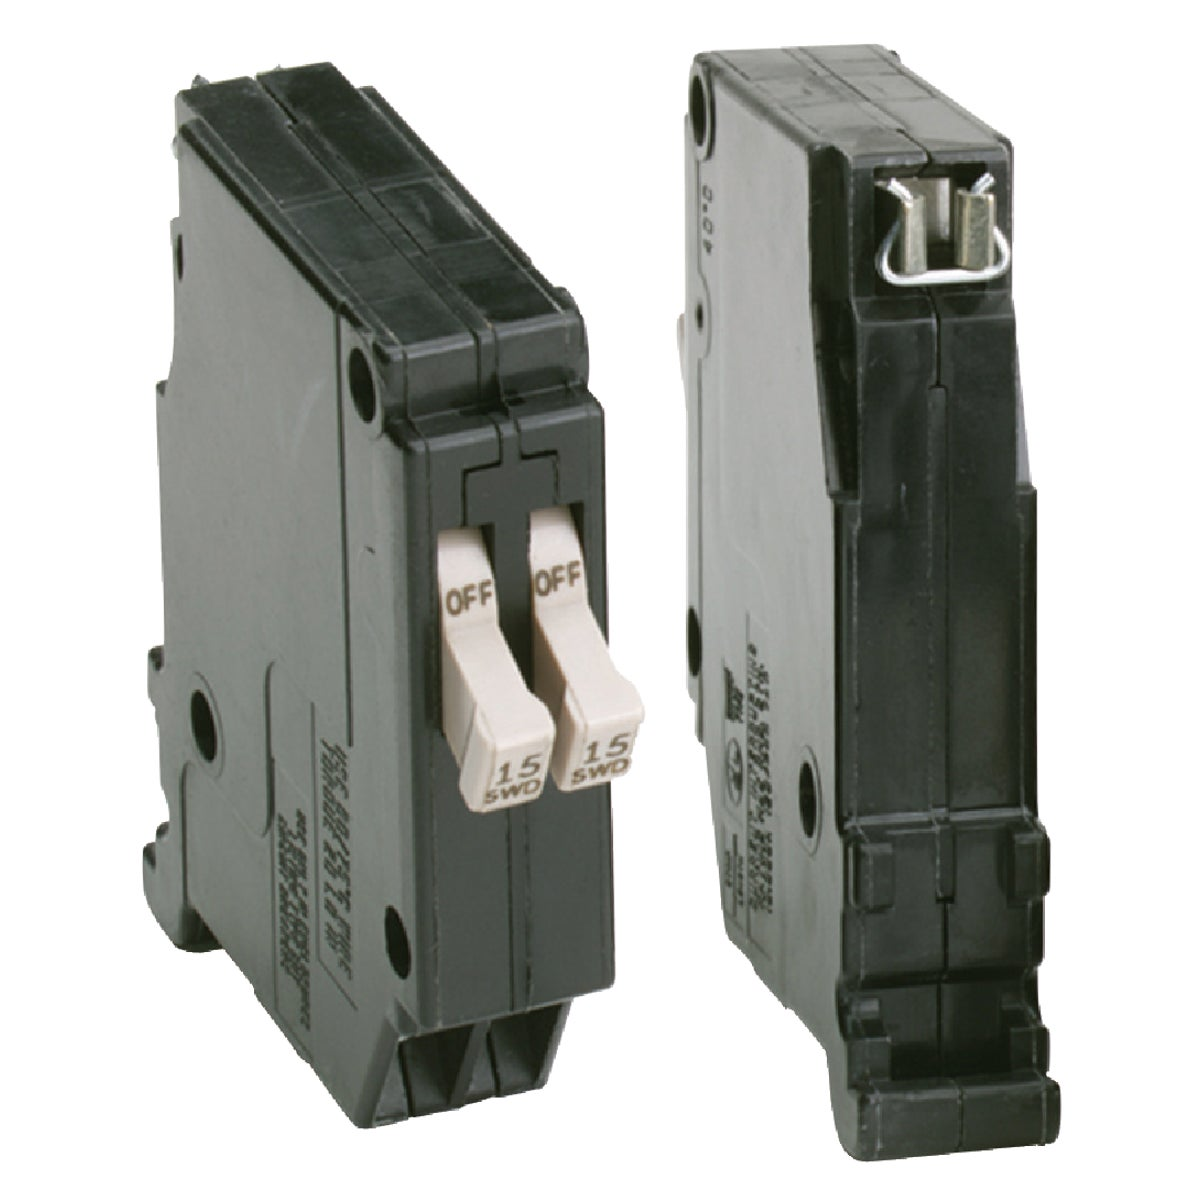 20A/20A CIRCUIT BREAKER - CHT2020 by Eaton Corporation